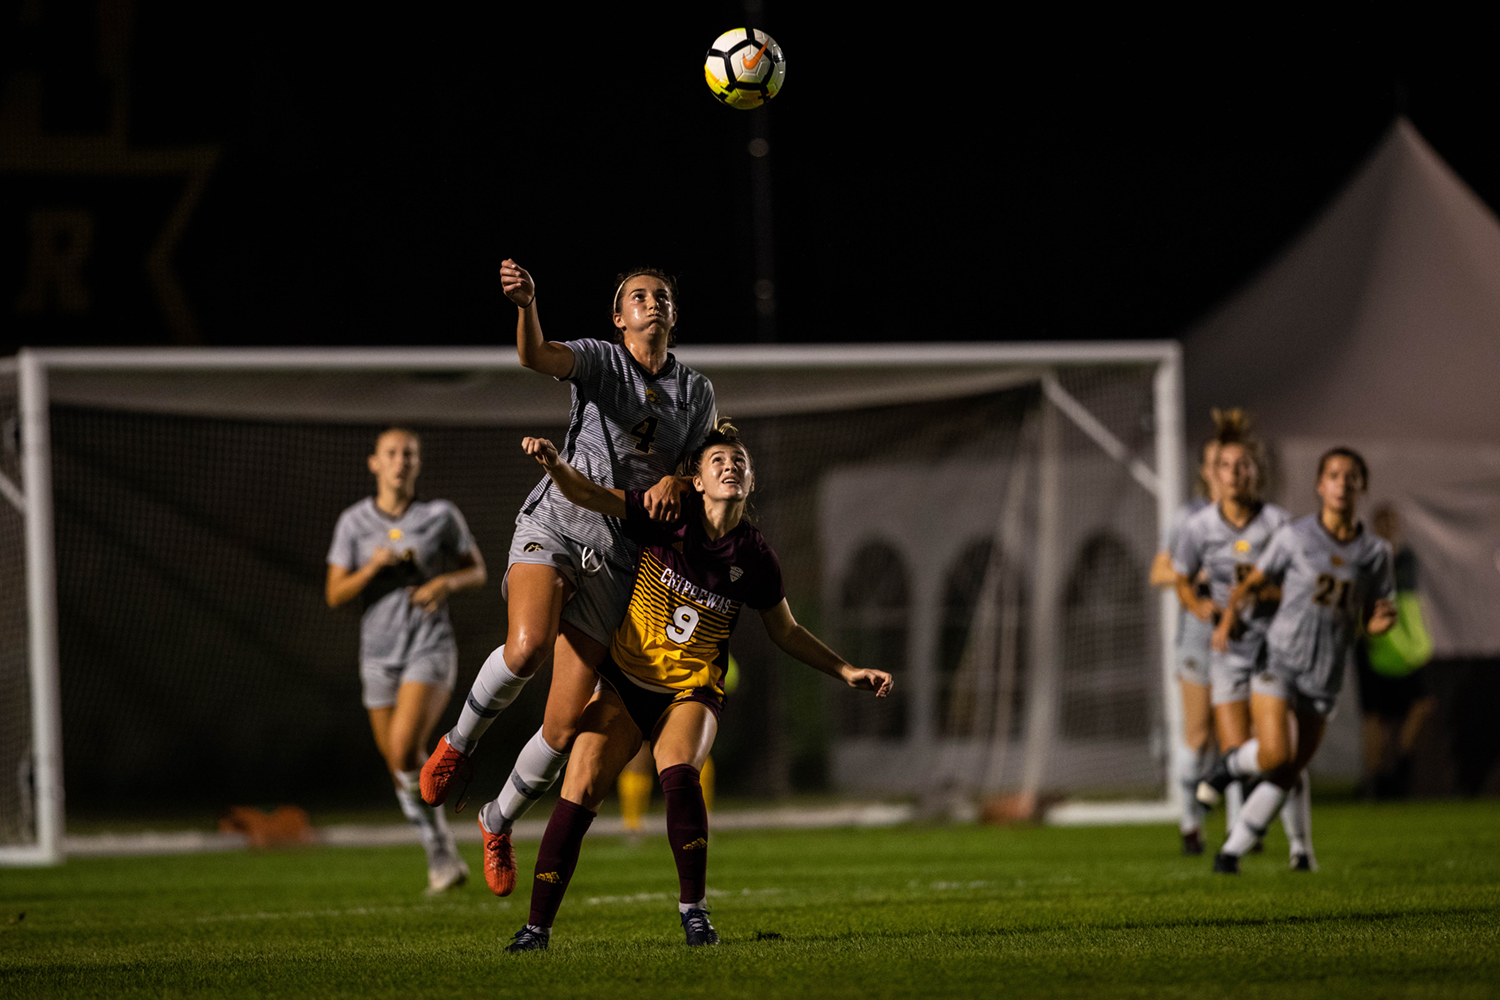 Iowa forward Kaleigh Haus wins a header during Iowa's game against Central Michigan on Friday, Aug. 31, 2018. The Hawkeyes defeated the Chippewas 3-1.